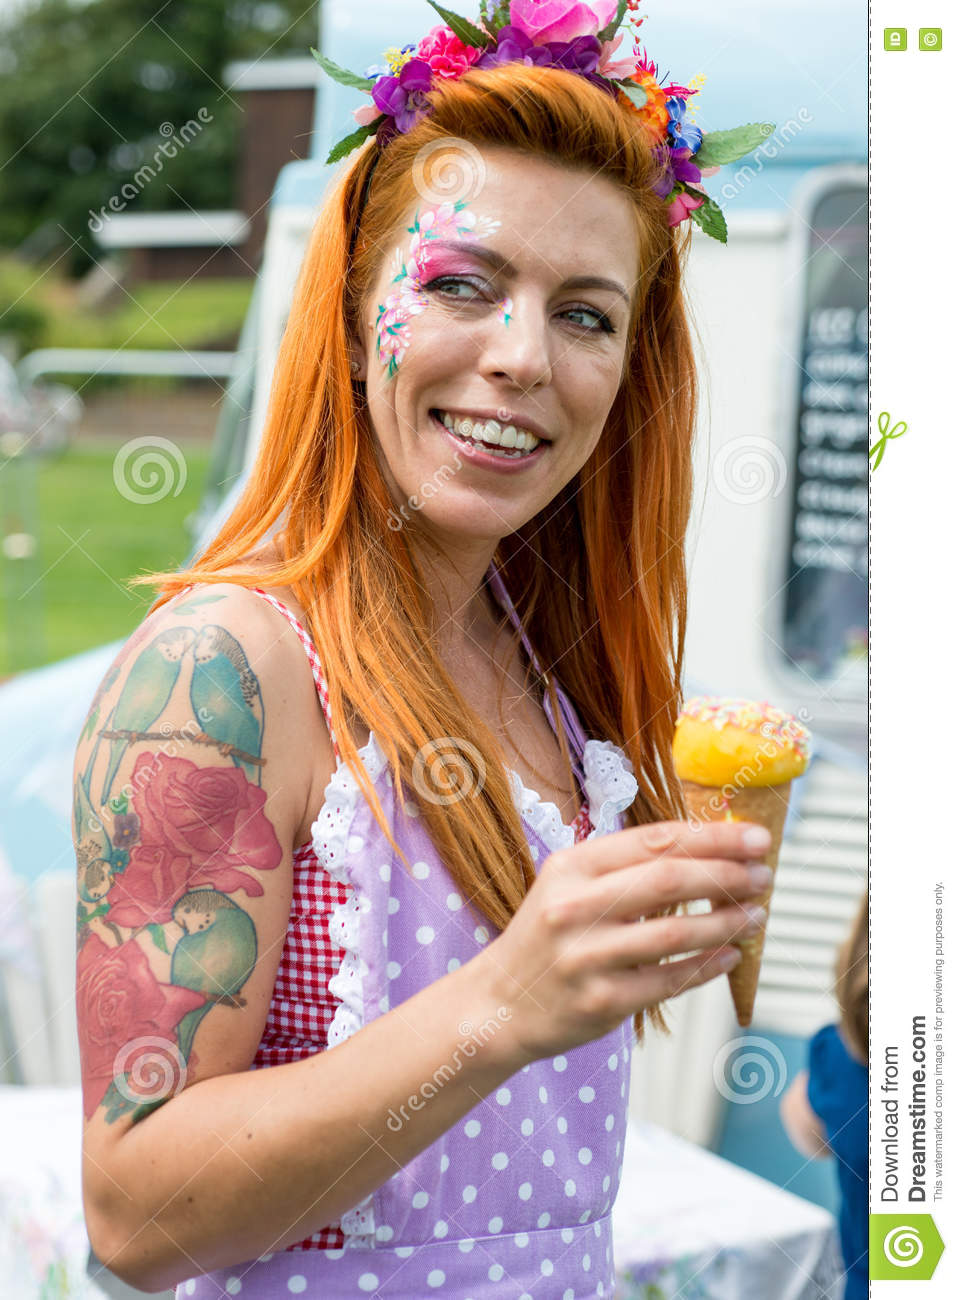 Smiling red haired lady wearing vintage dress holding ice cream